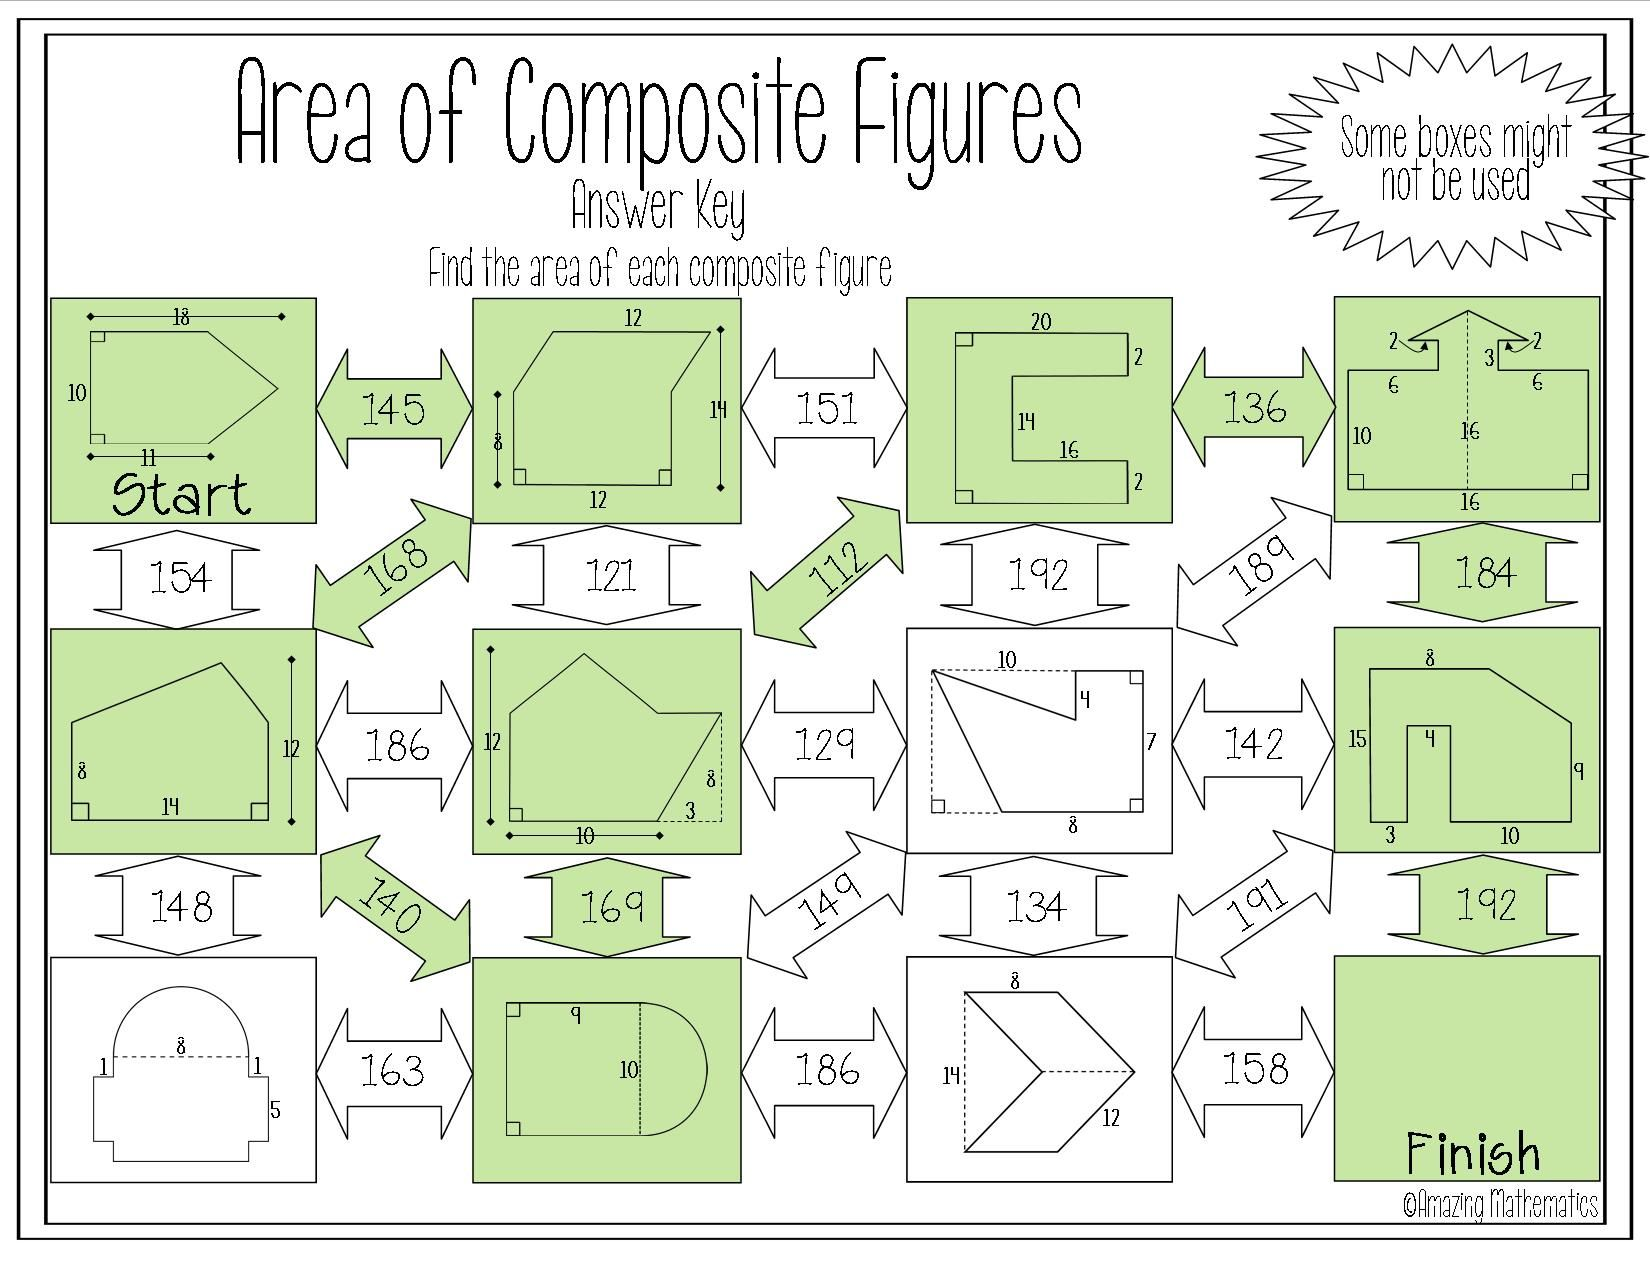 Area of Composite Figures Worksheet - Maze Activity   7th grade math [ 1275 x 1650 Pixel ]